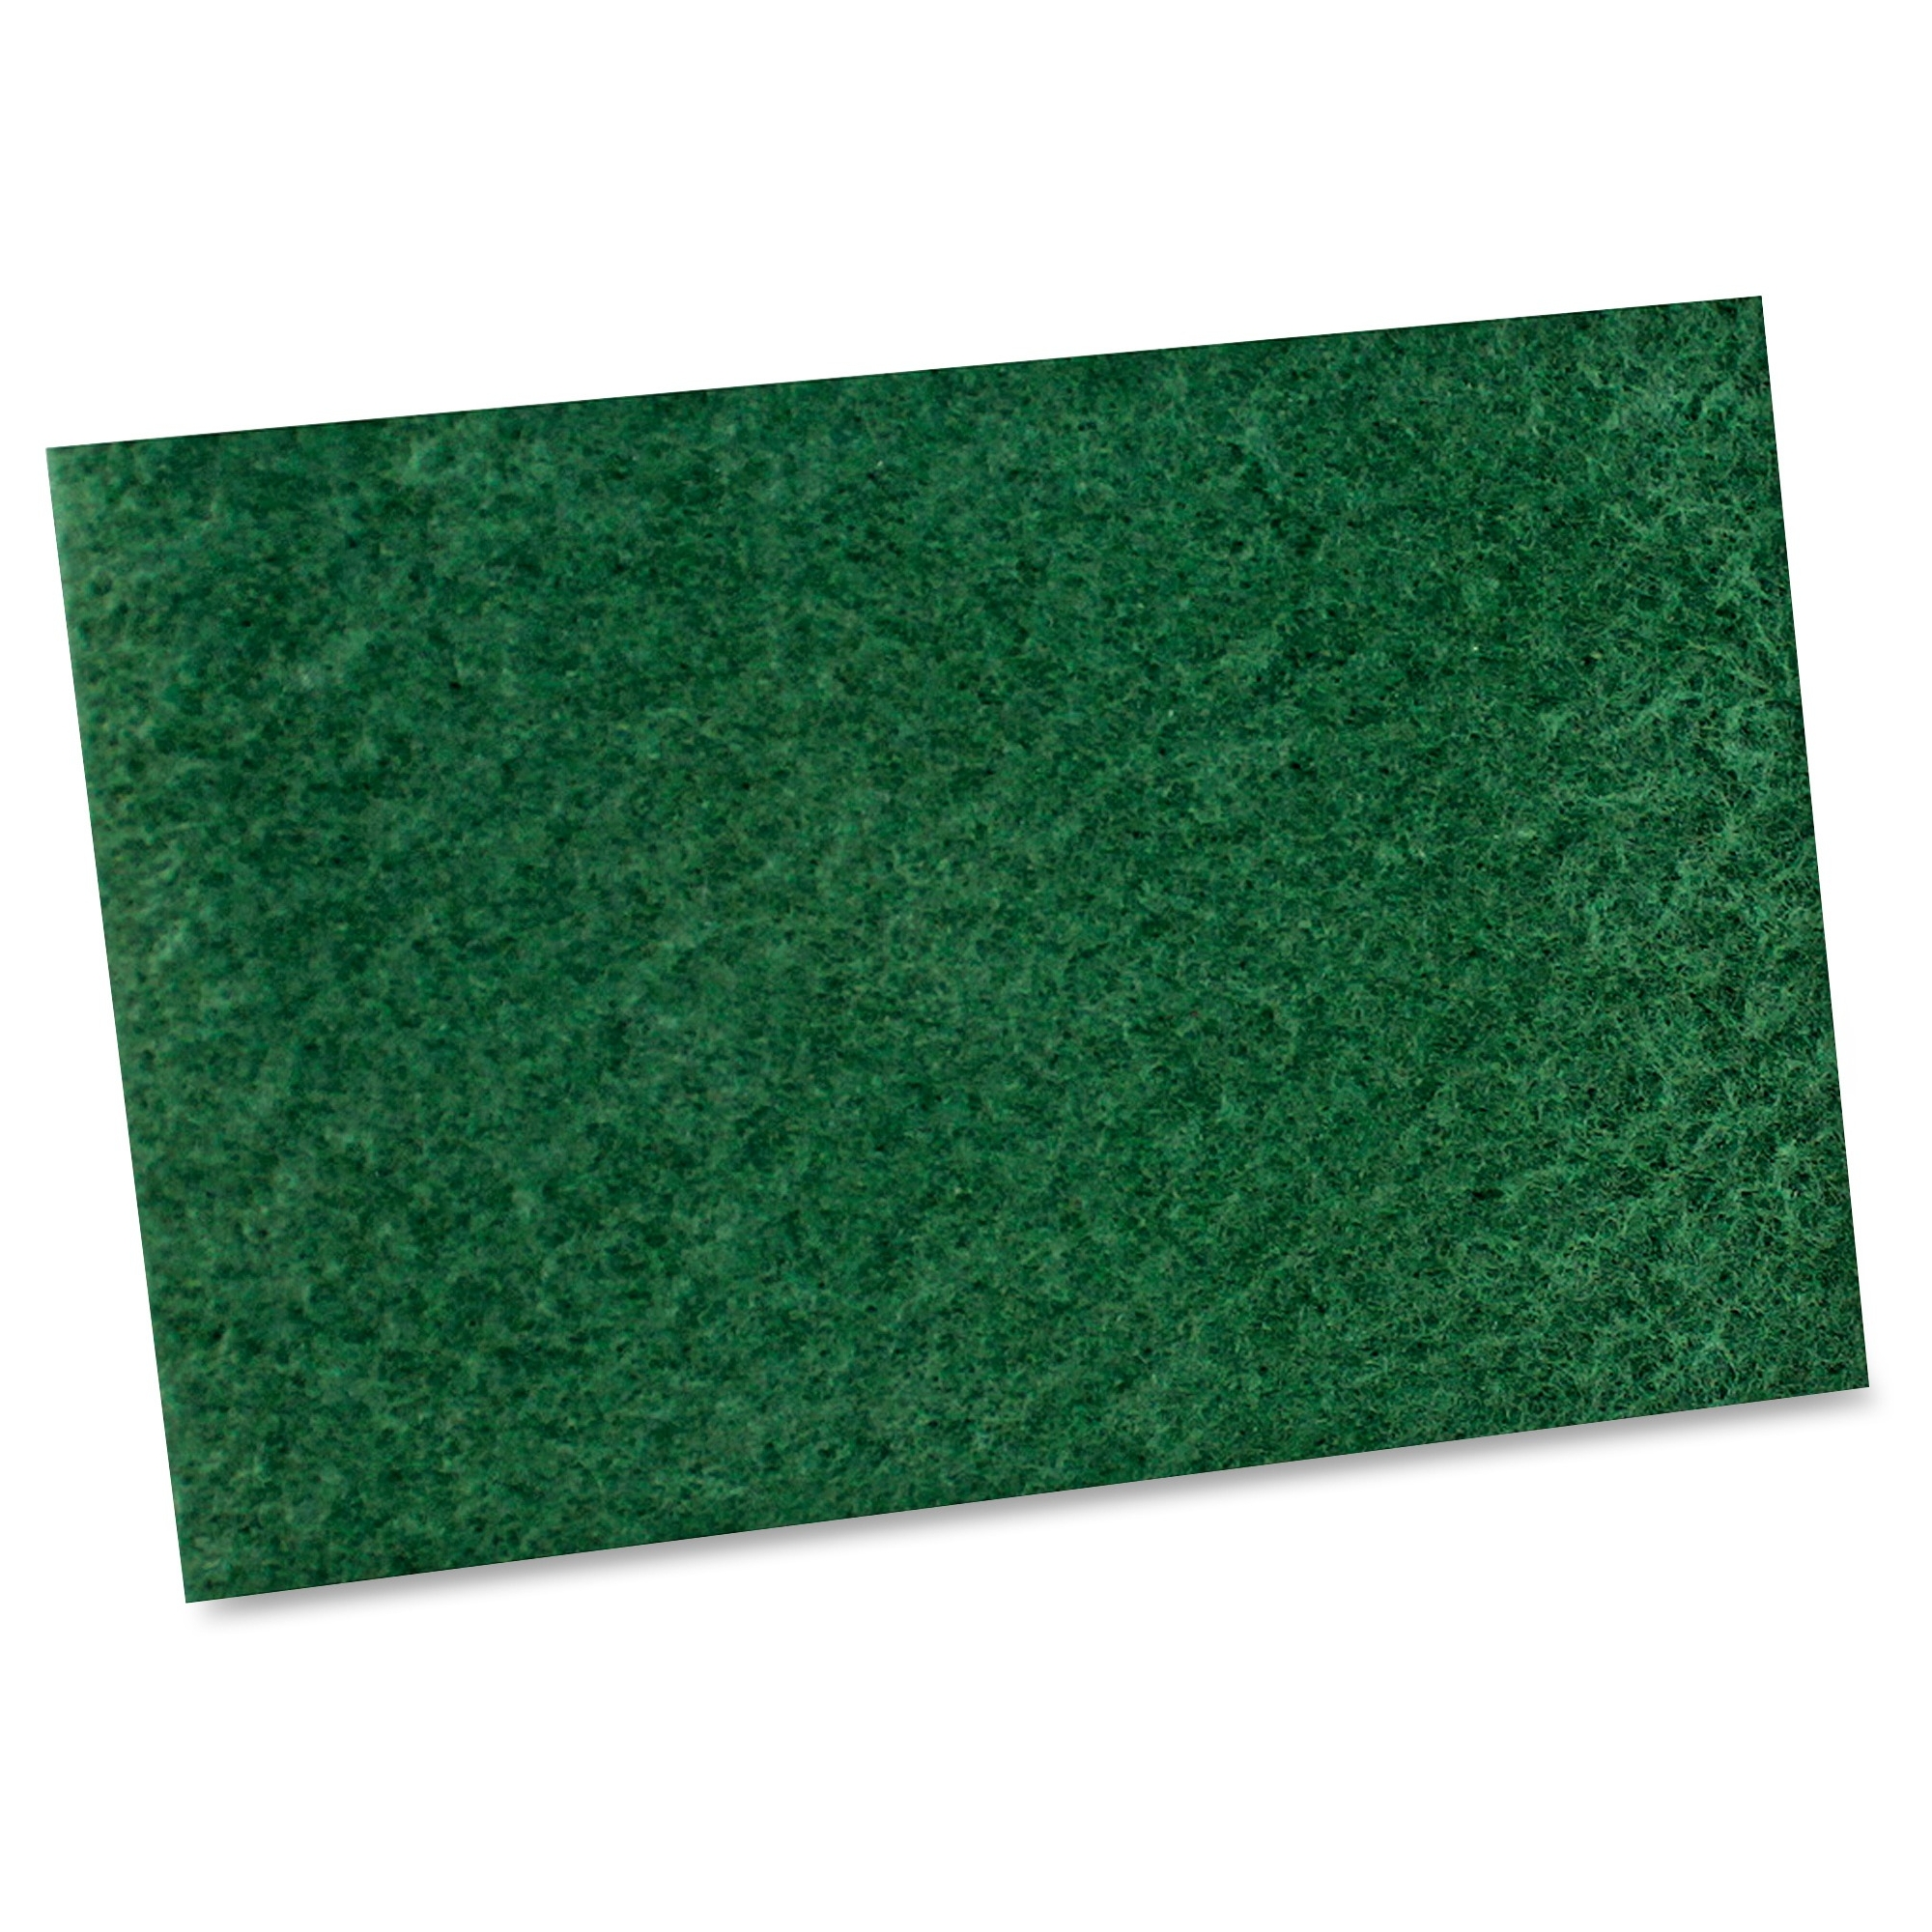 """Impact Products General Purpose Scouring Pad - 6"""" X 9"""" - 10/bag - Green (7135b)"""